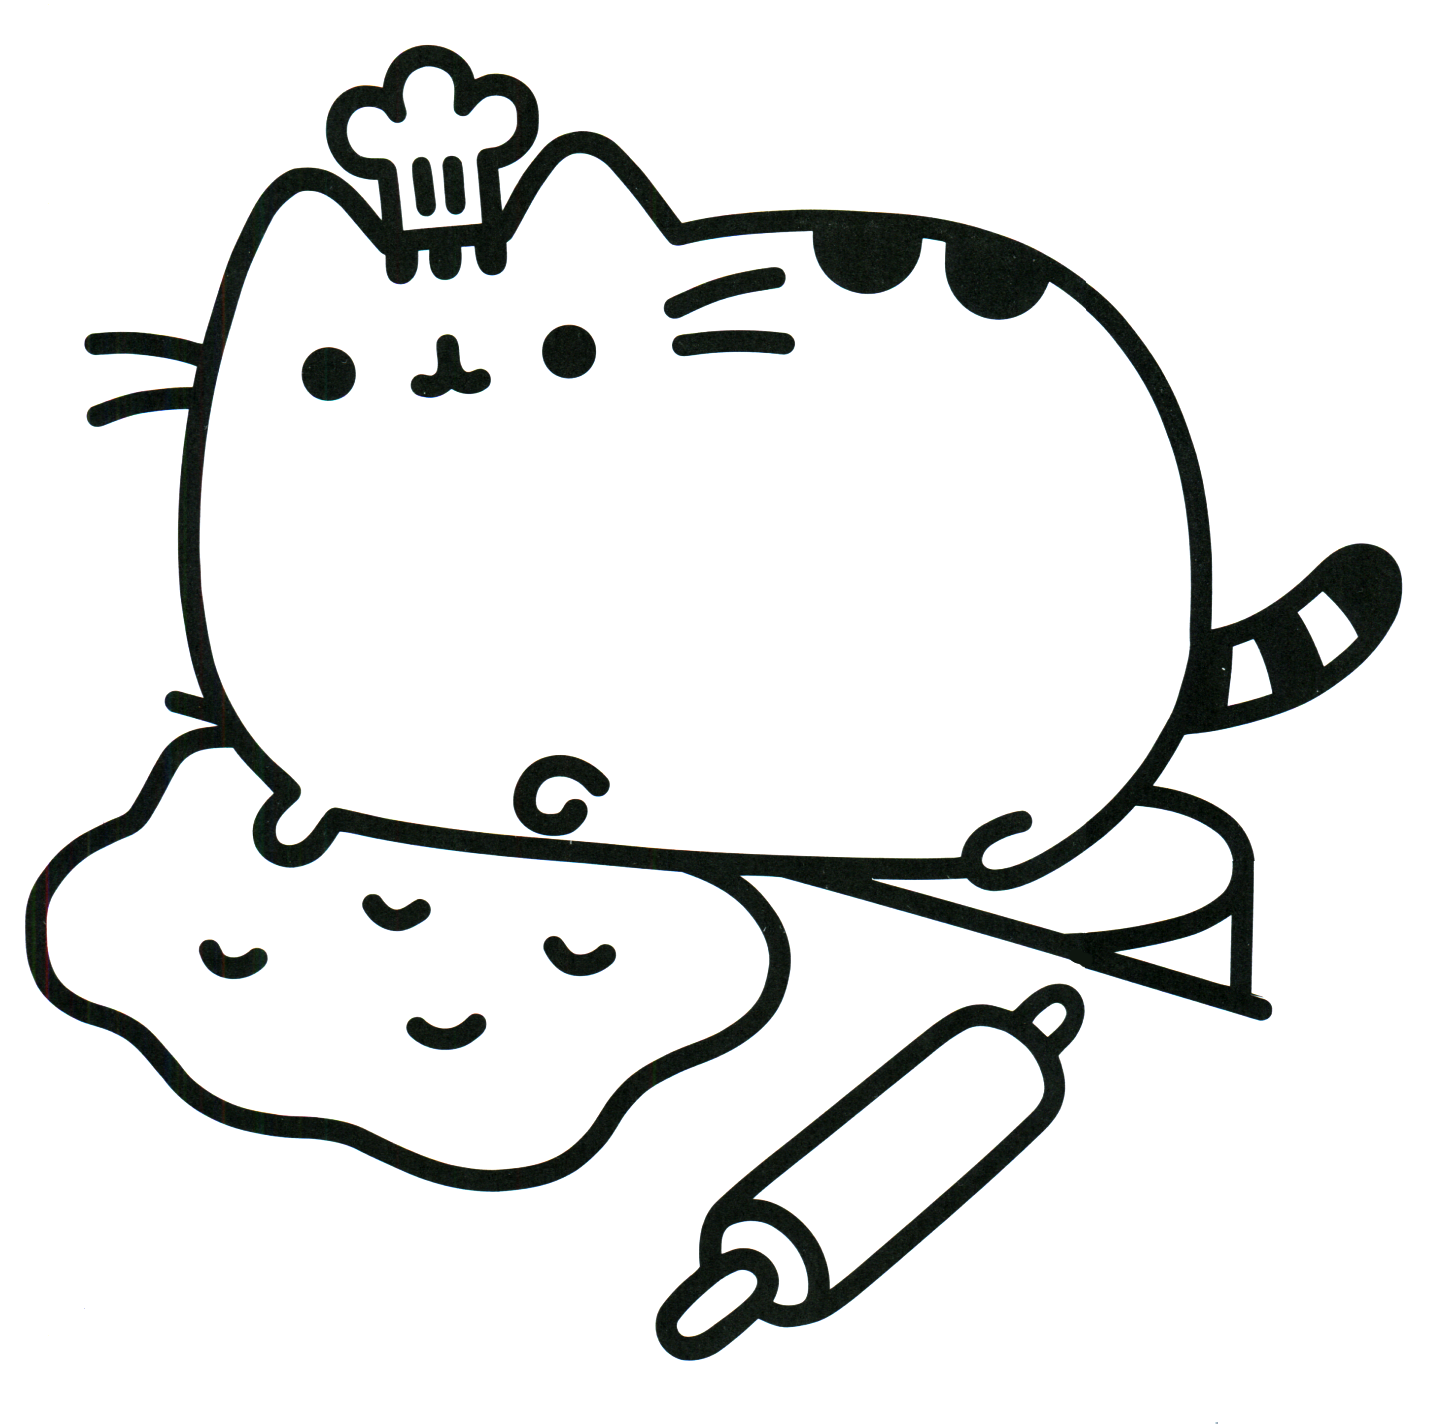 Pusheen Coloring Book Pusheen Pusheen the Cat | dessin | Pinterest ...